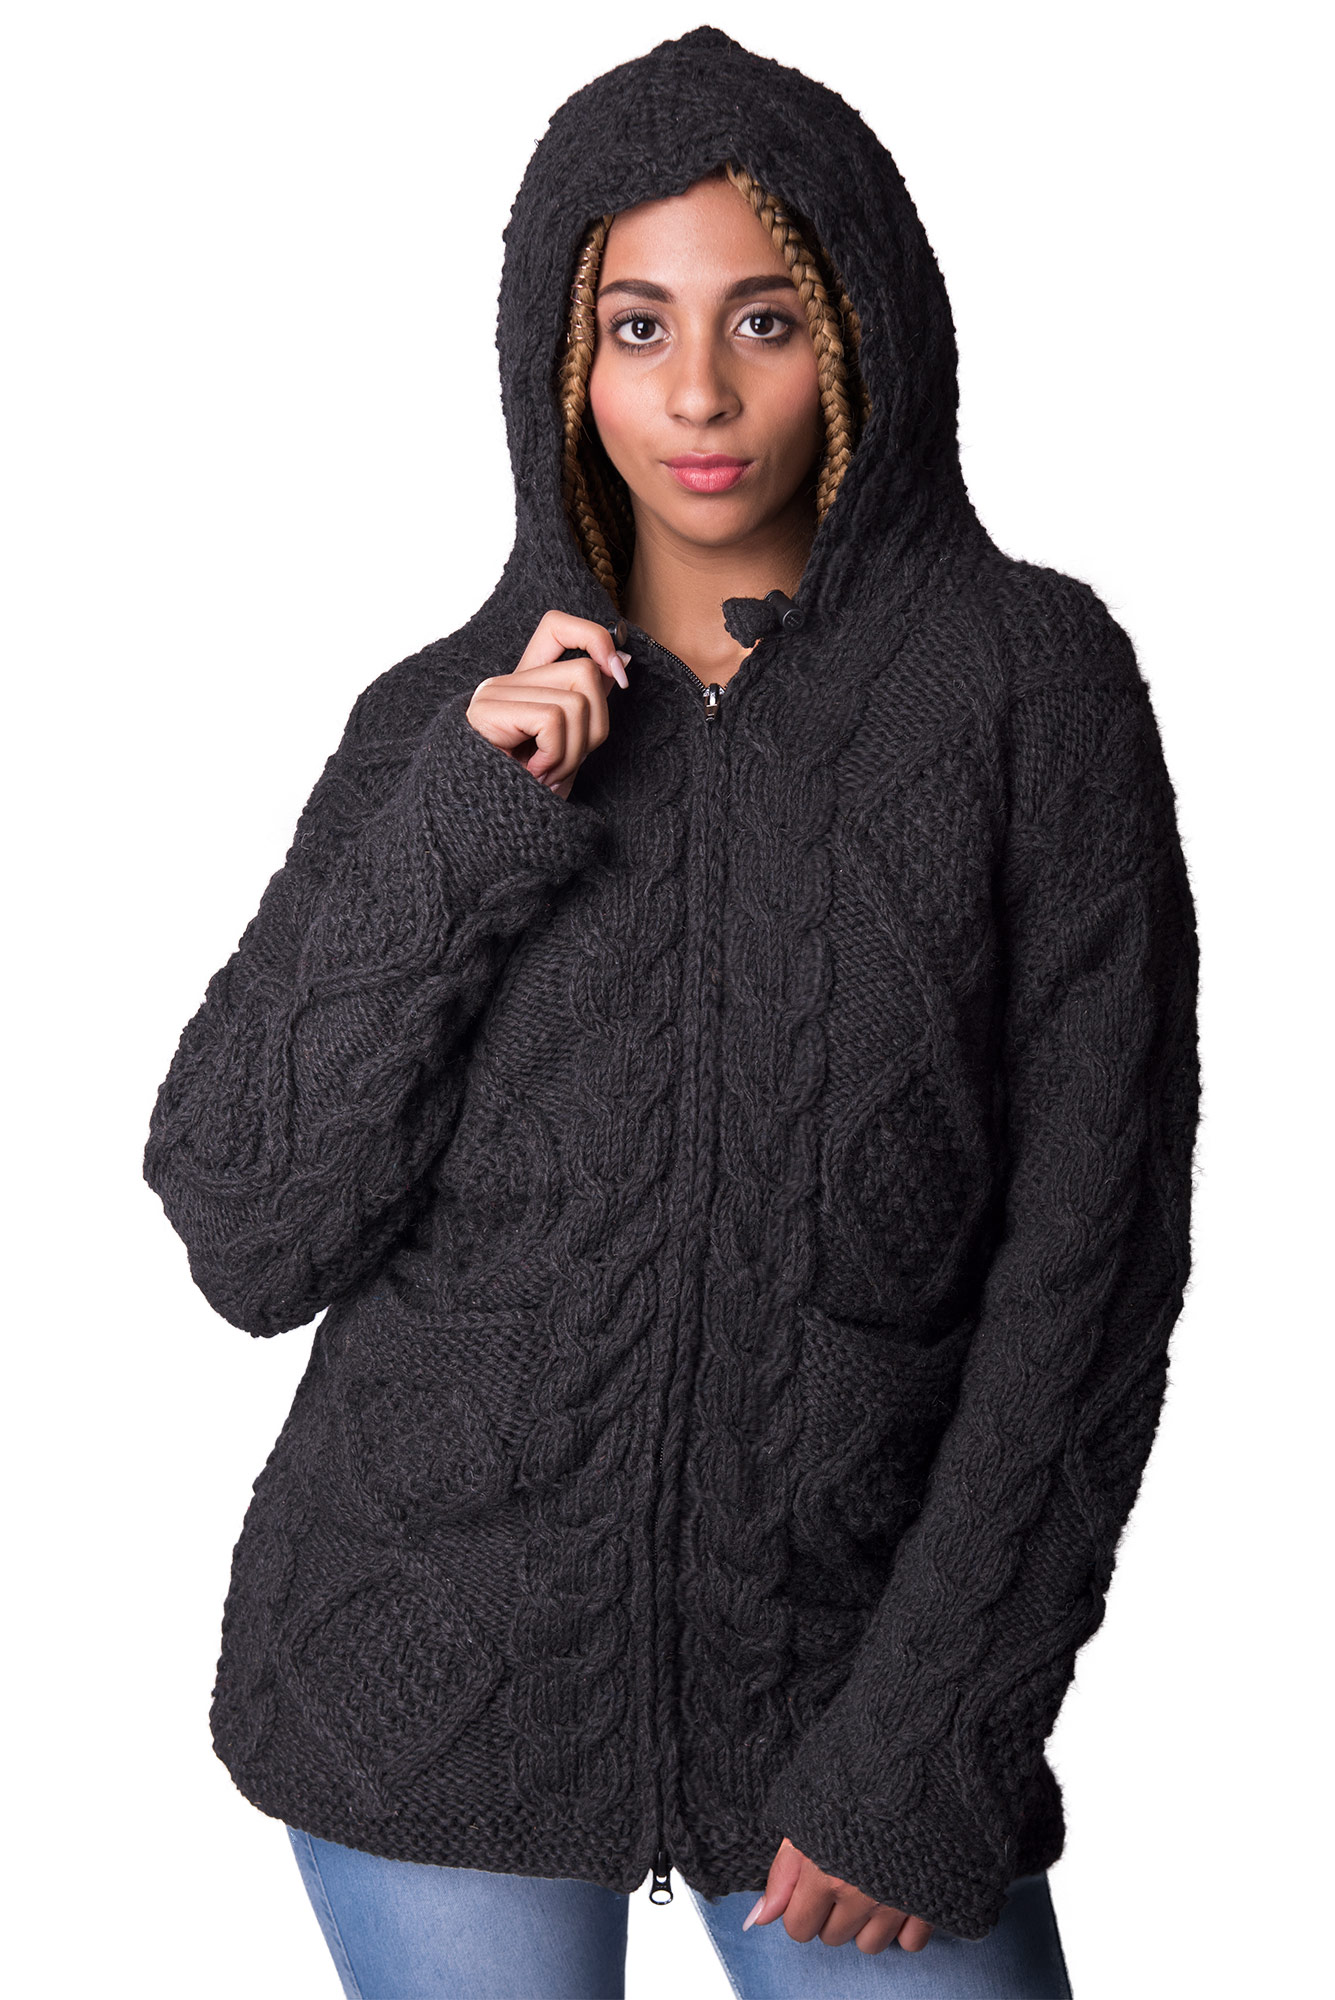 Long Length, Black Cable Knit